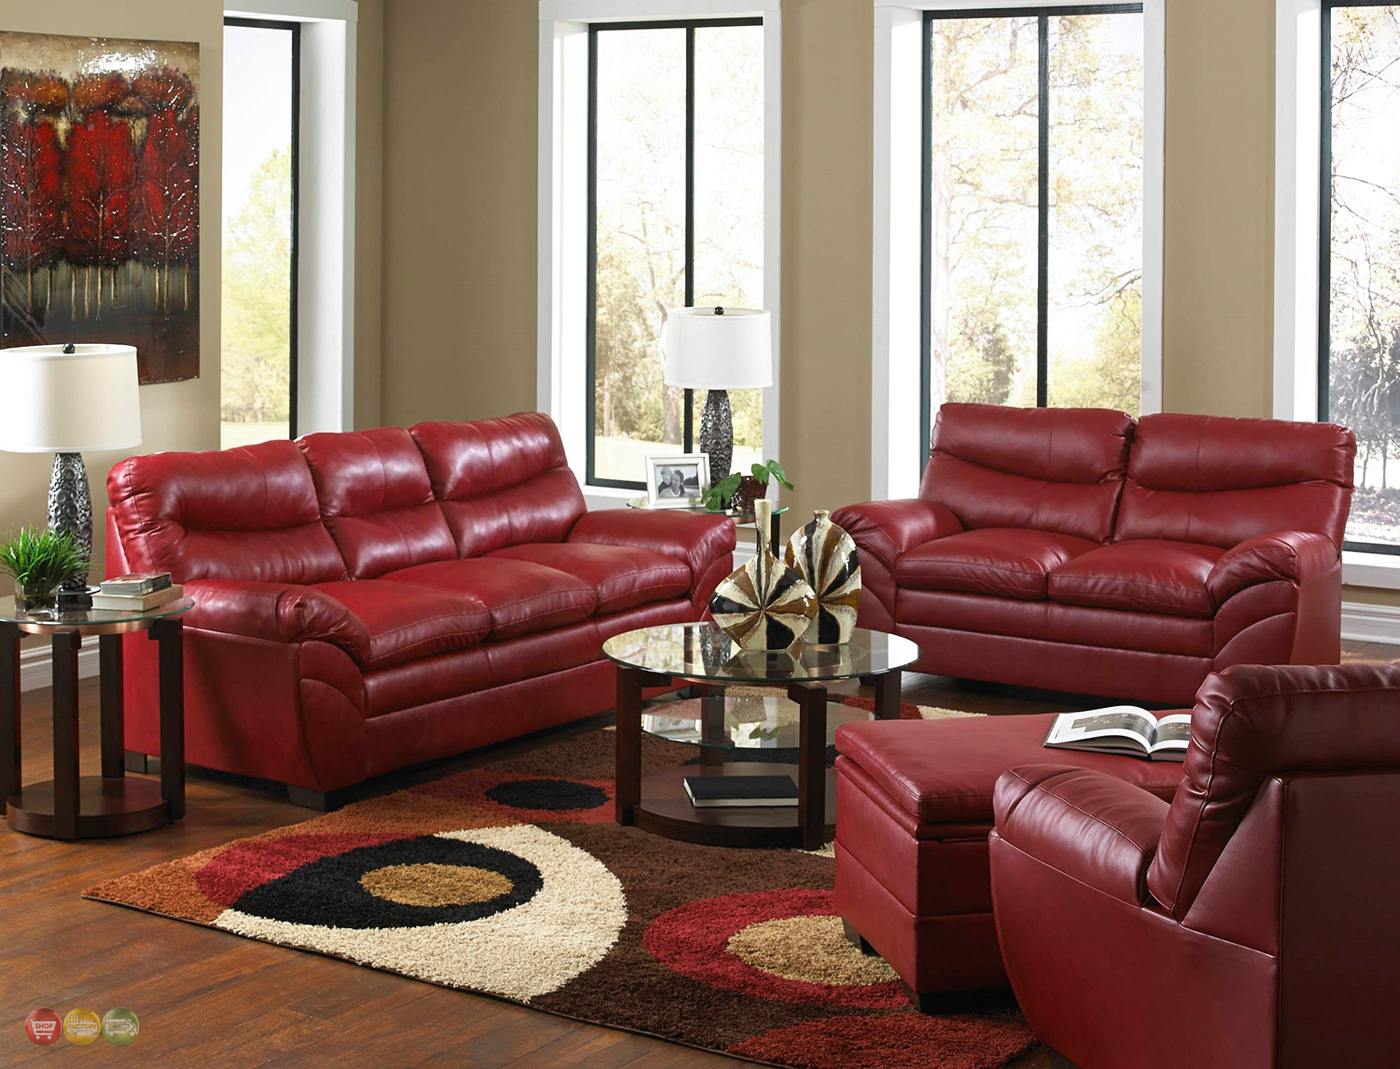 Red living room furniture sets 2017 2018 best cars reviews for Family room furniture sets